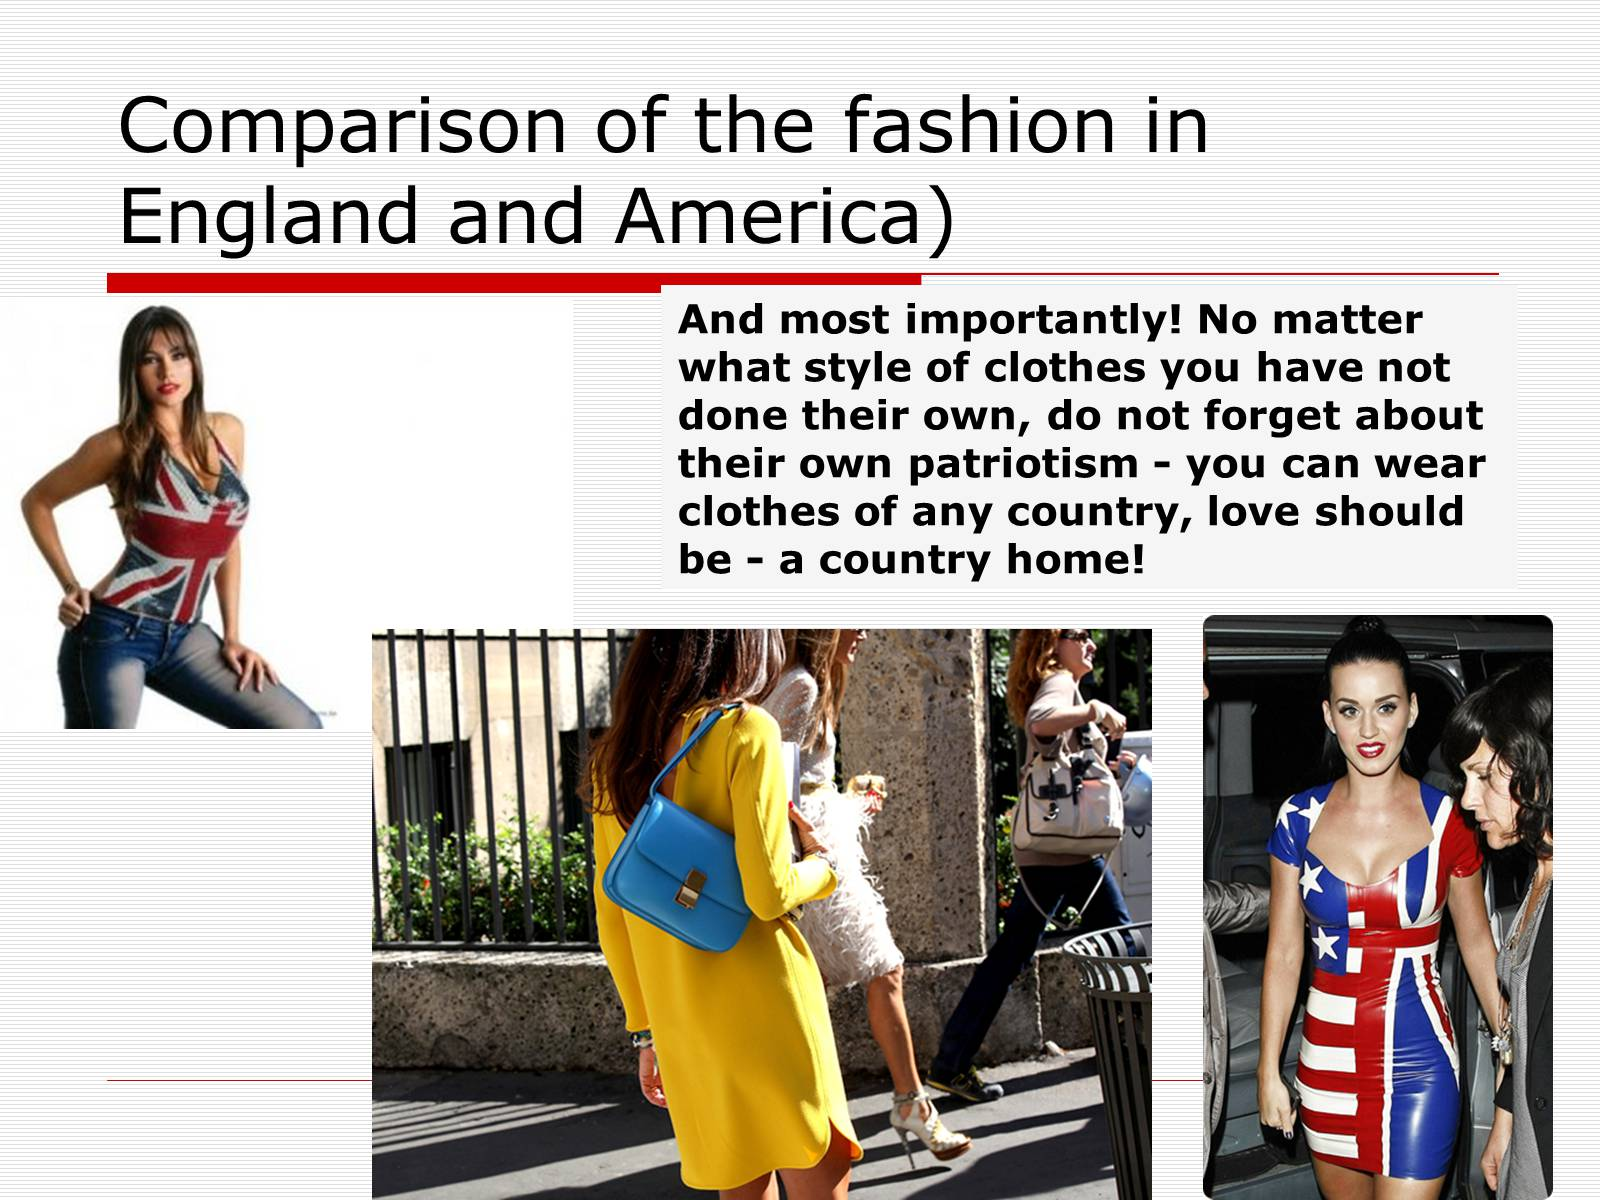 Презентація на тему «Comparison of the fashion in England and America» - Слайд #54